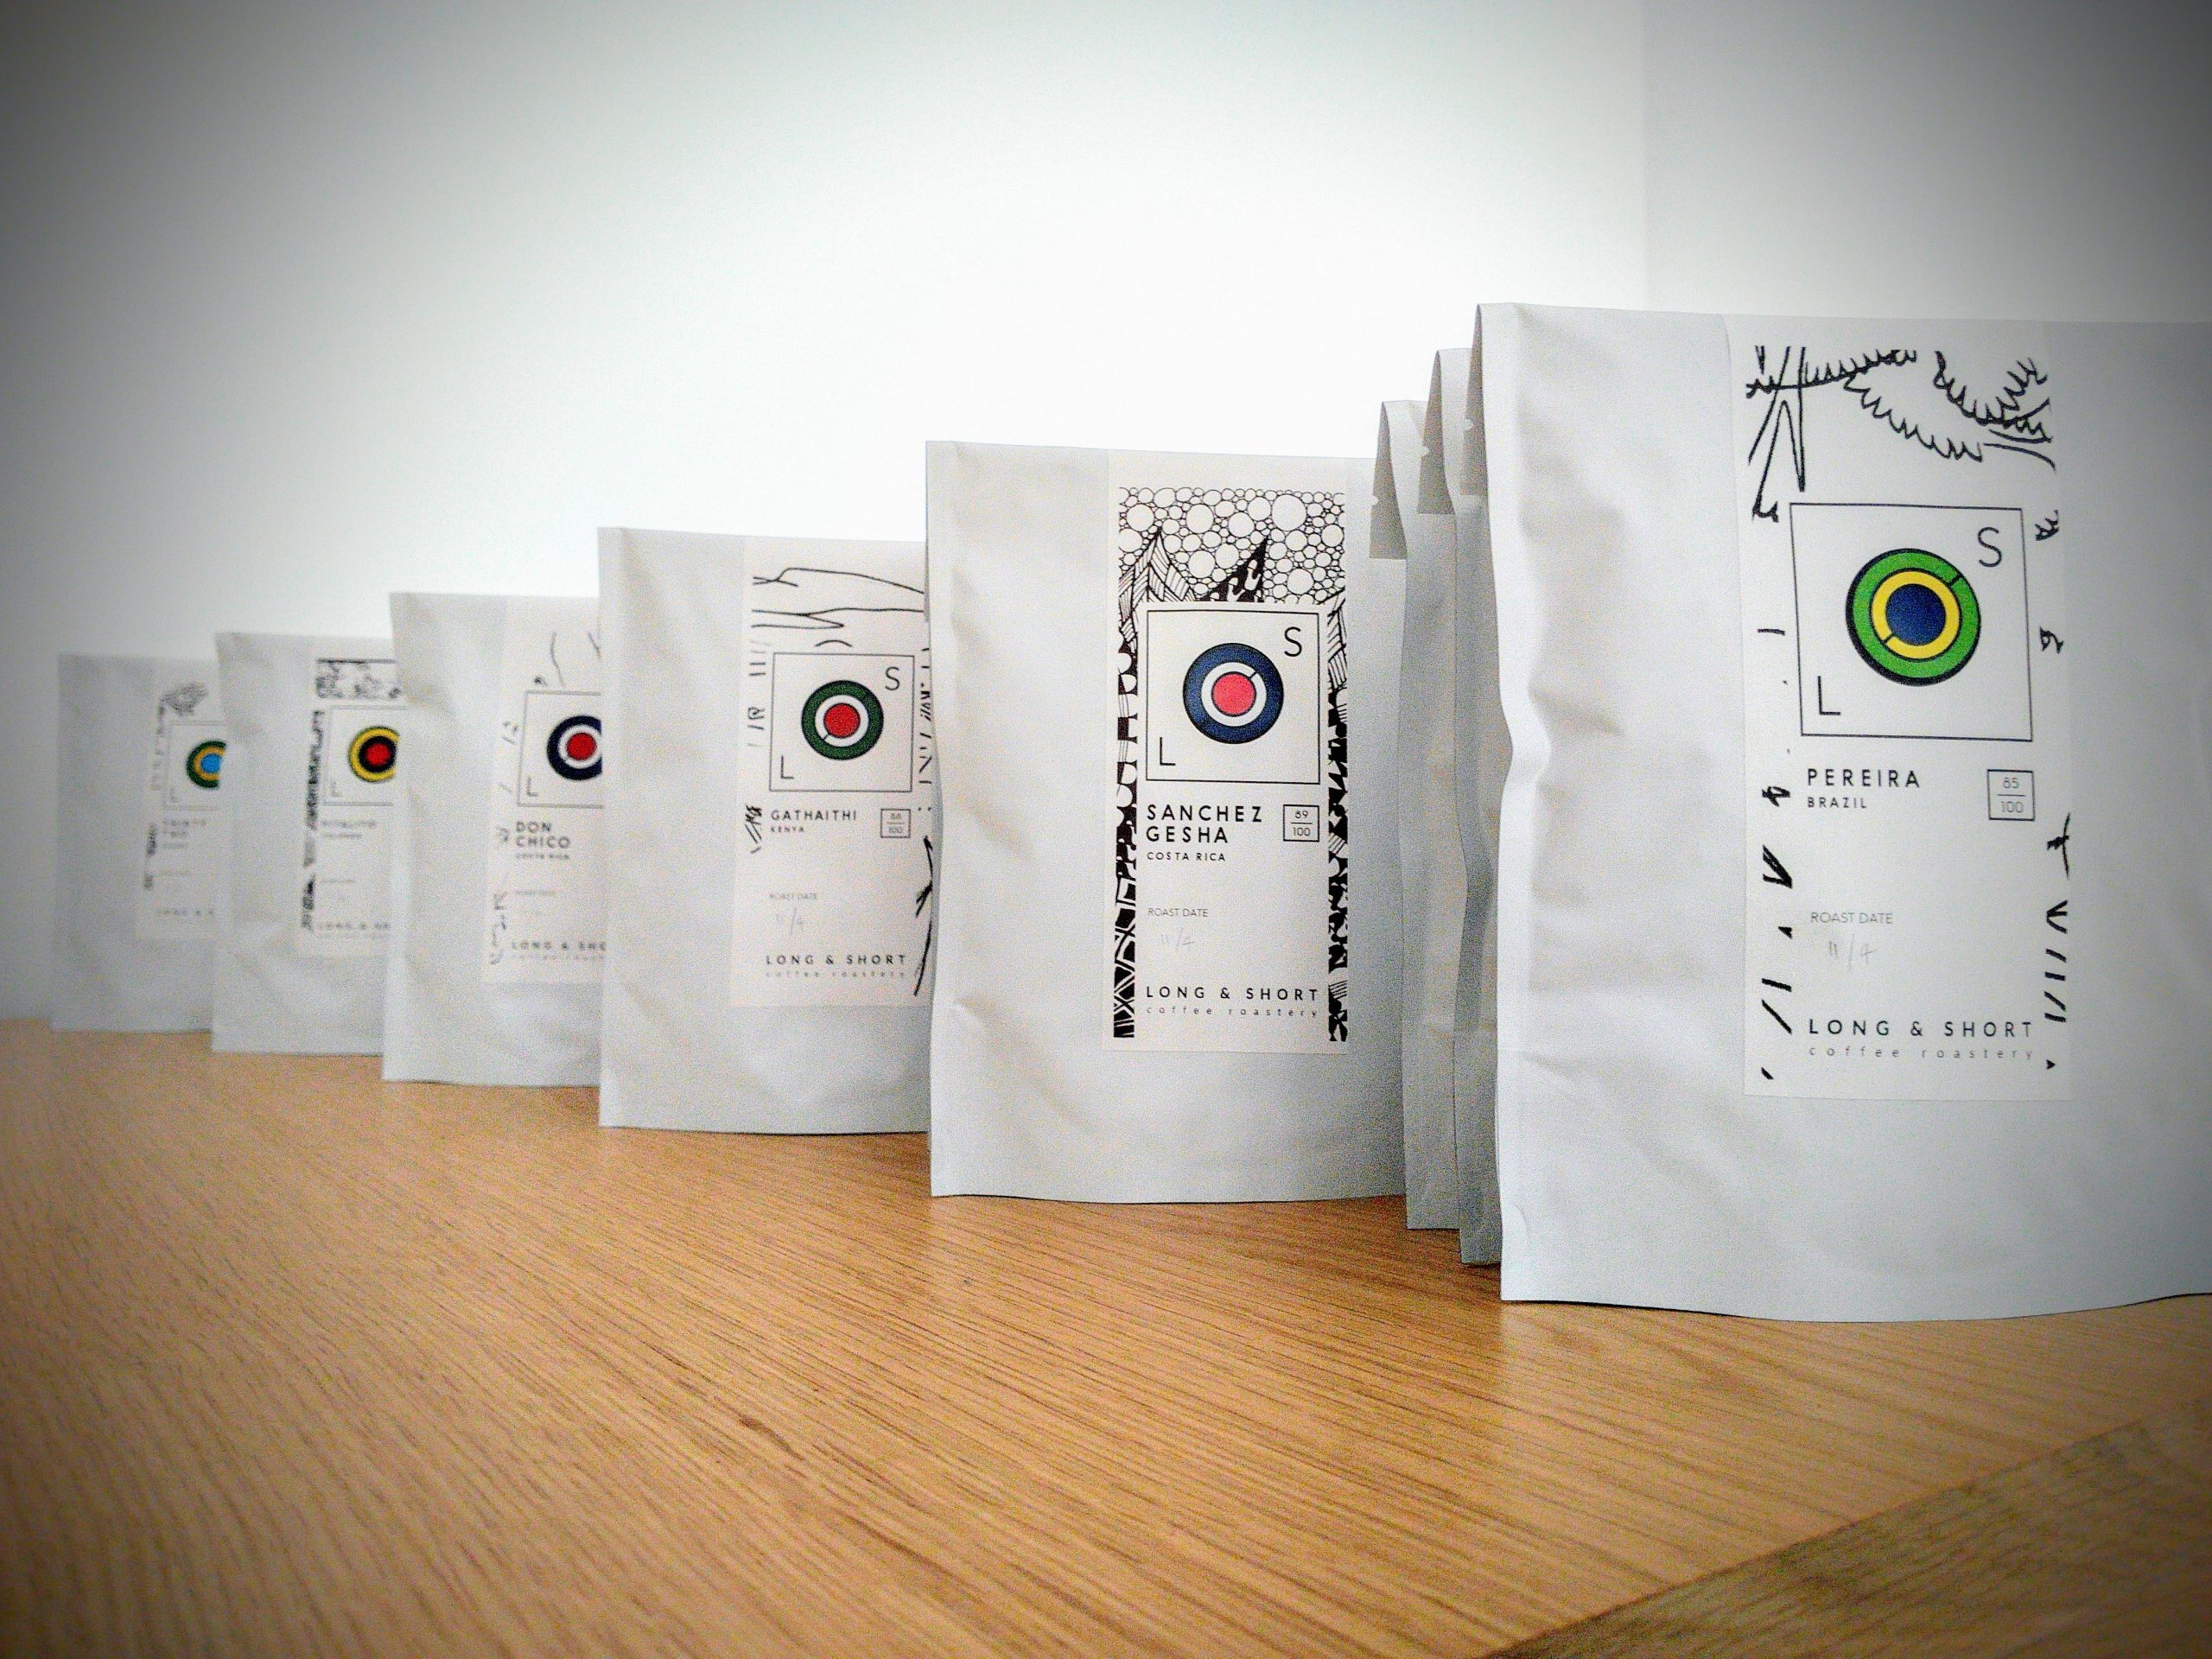 The best coffee from across the globe